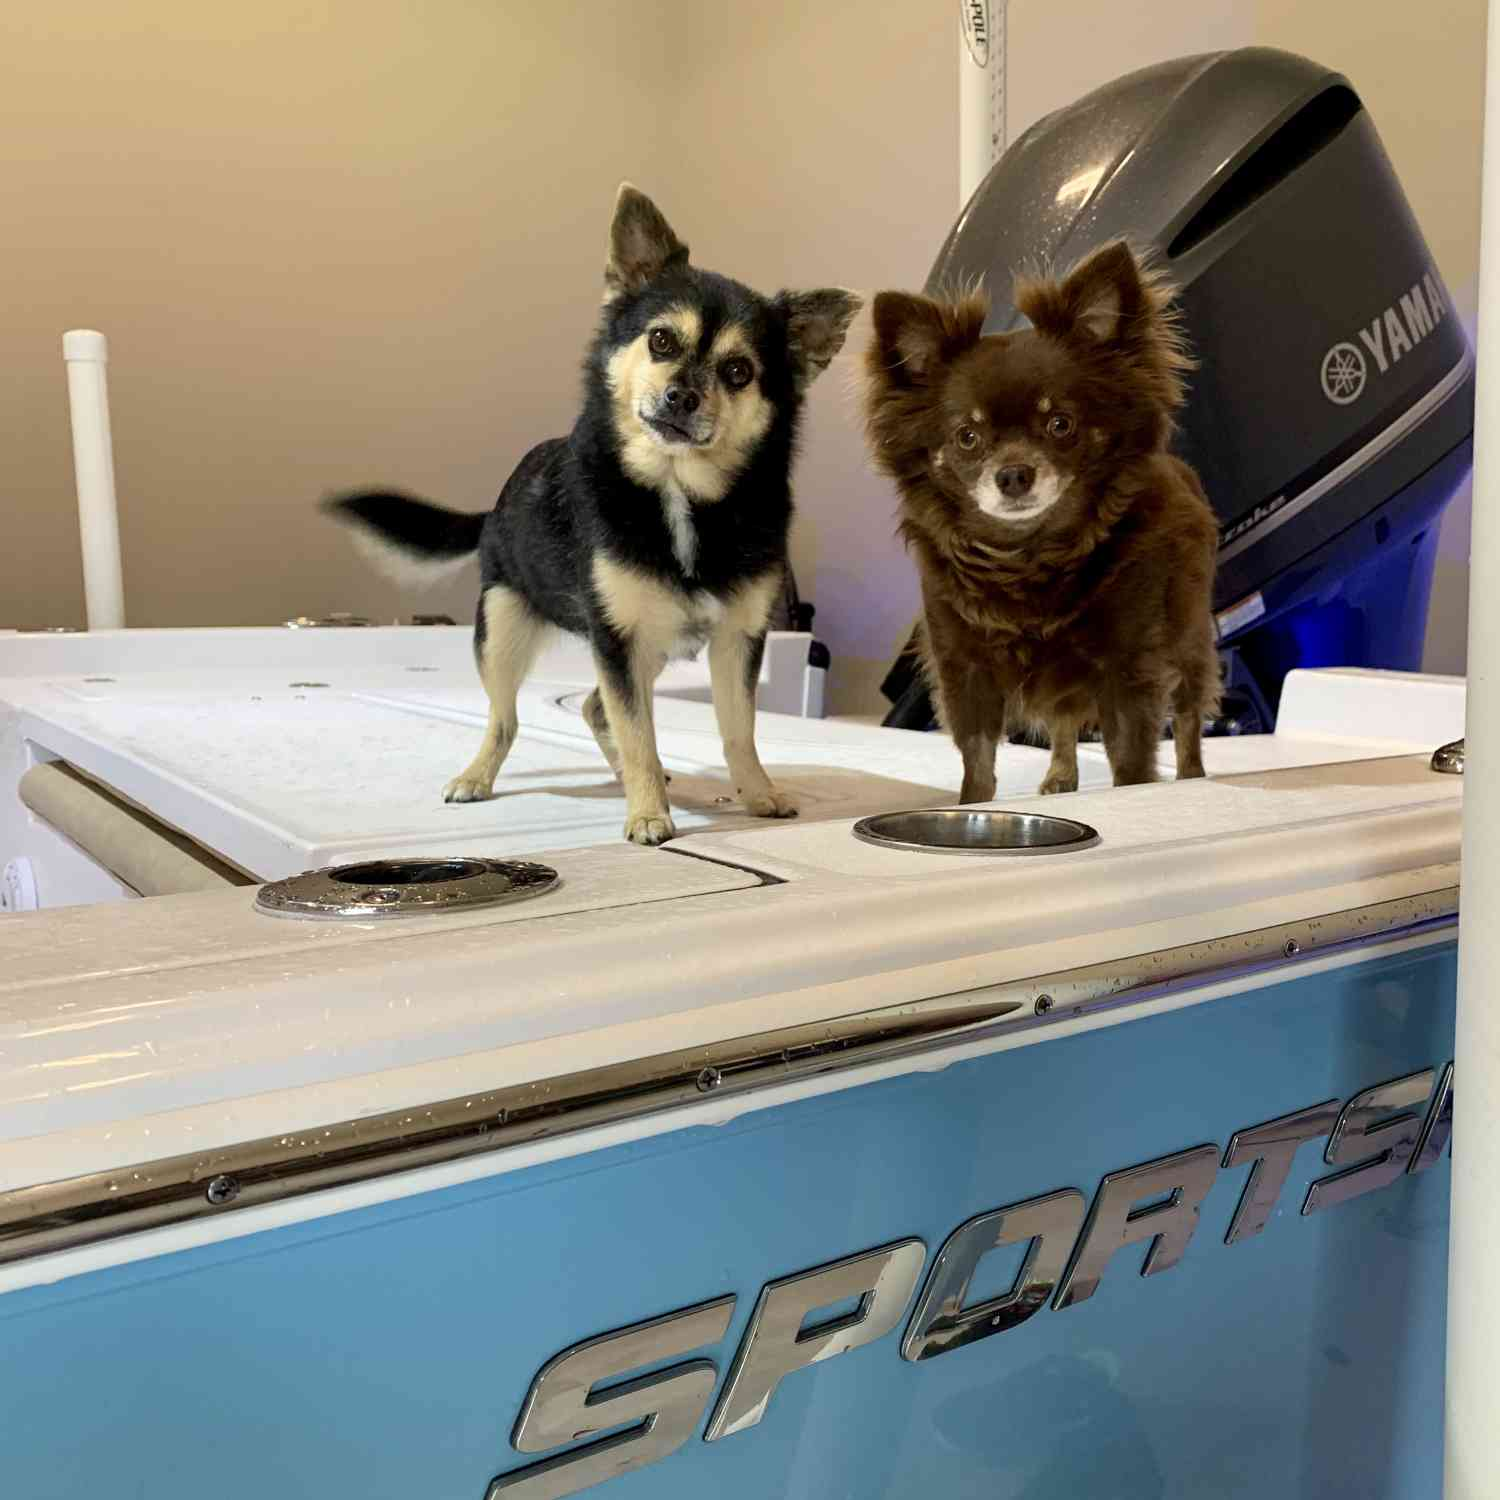 Title: Oli & Moo Take on Big Blue - On board their Sportsman Masters 247 Bay Boat - Location: Luling, Louisiana. Participating in the Photo Contest #SportsmanJune2020